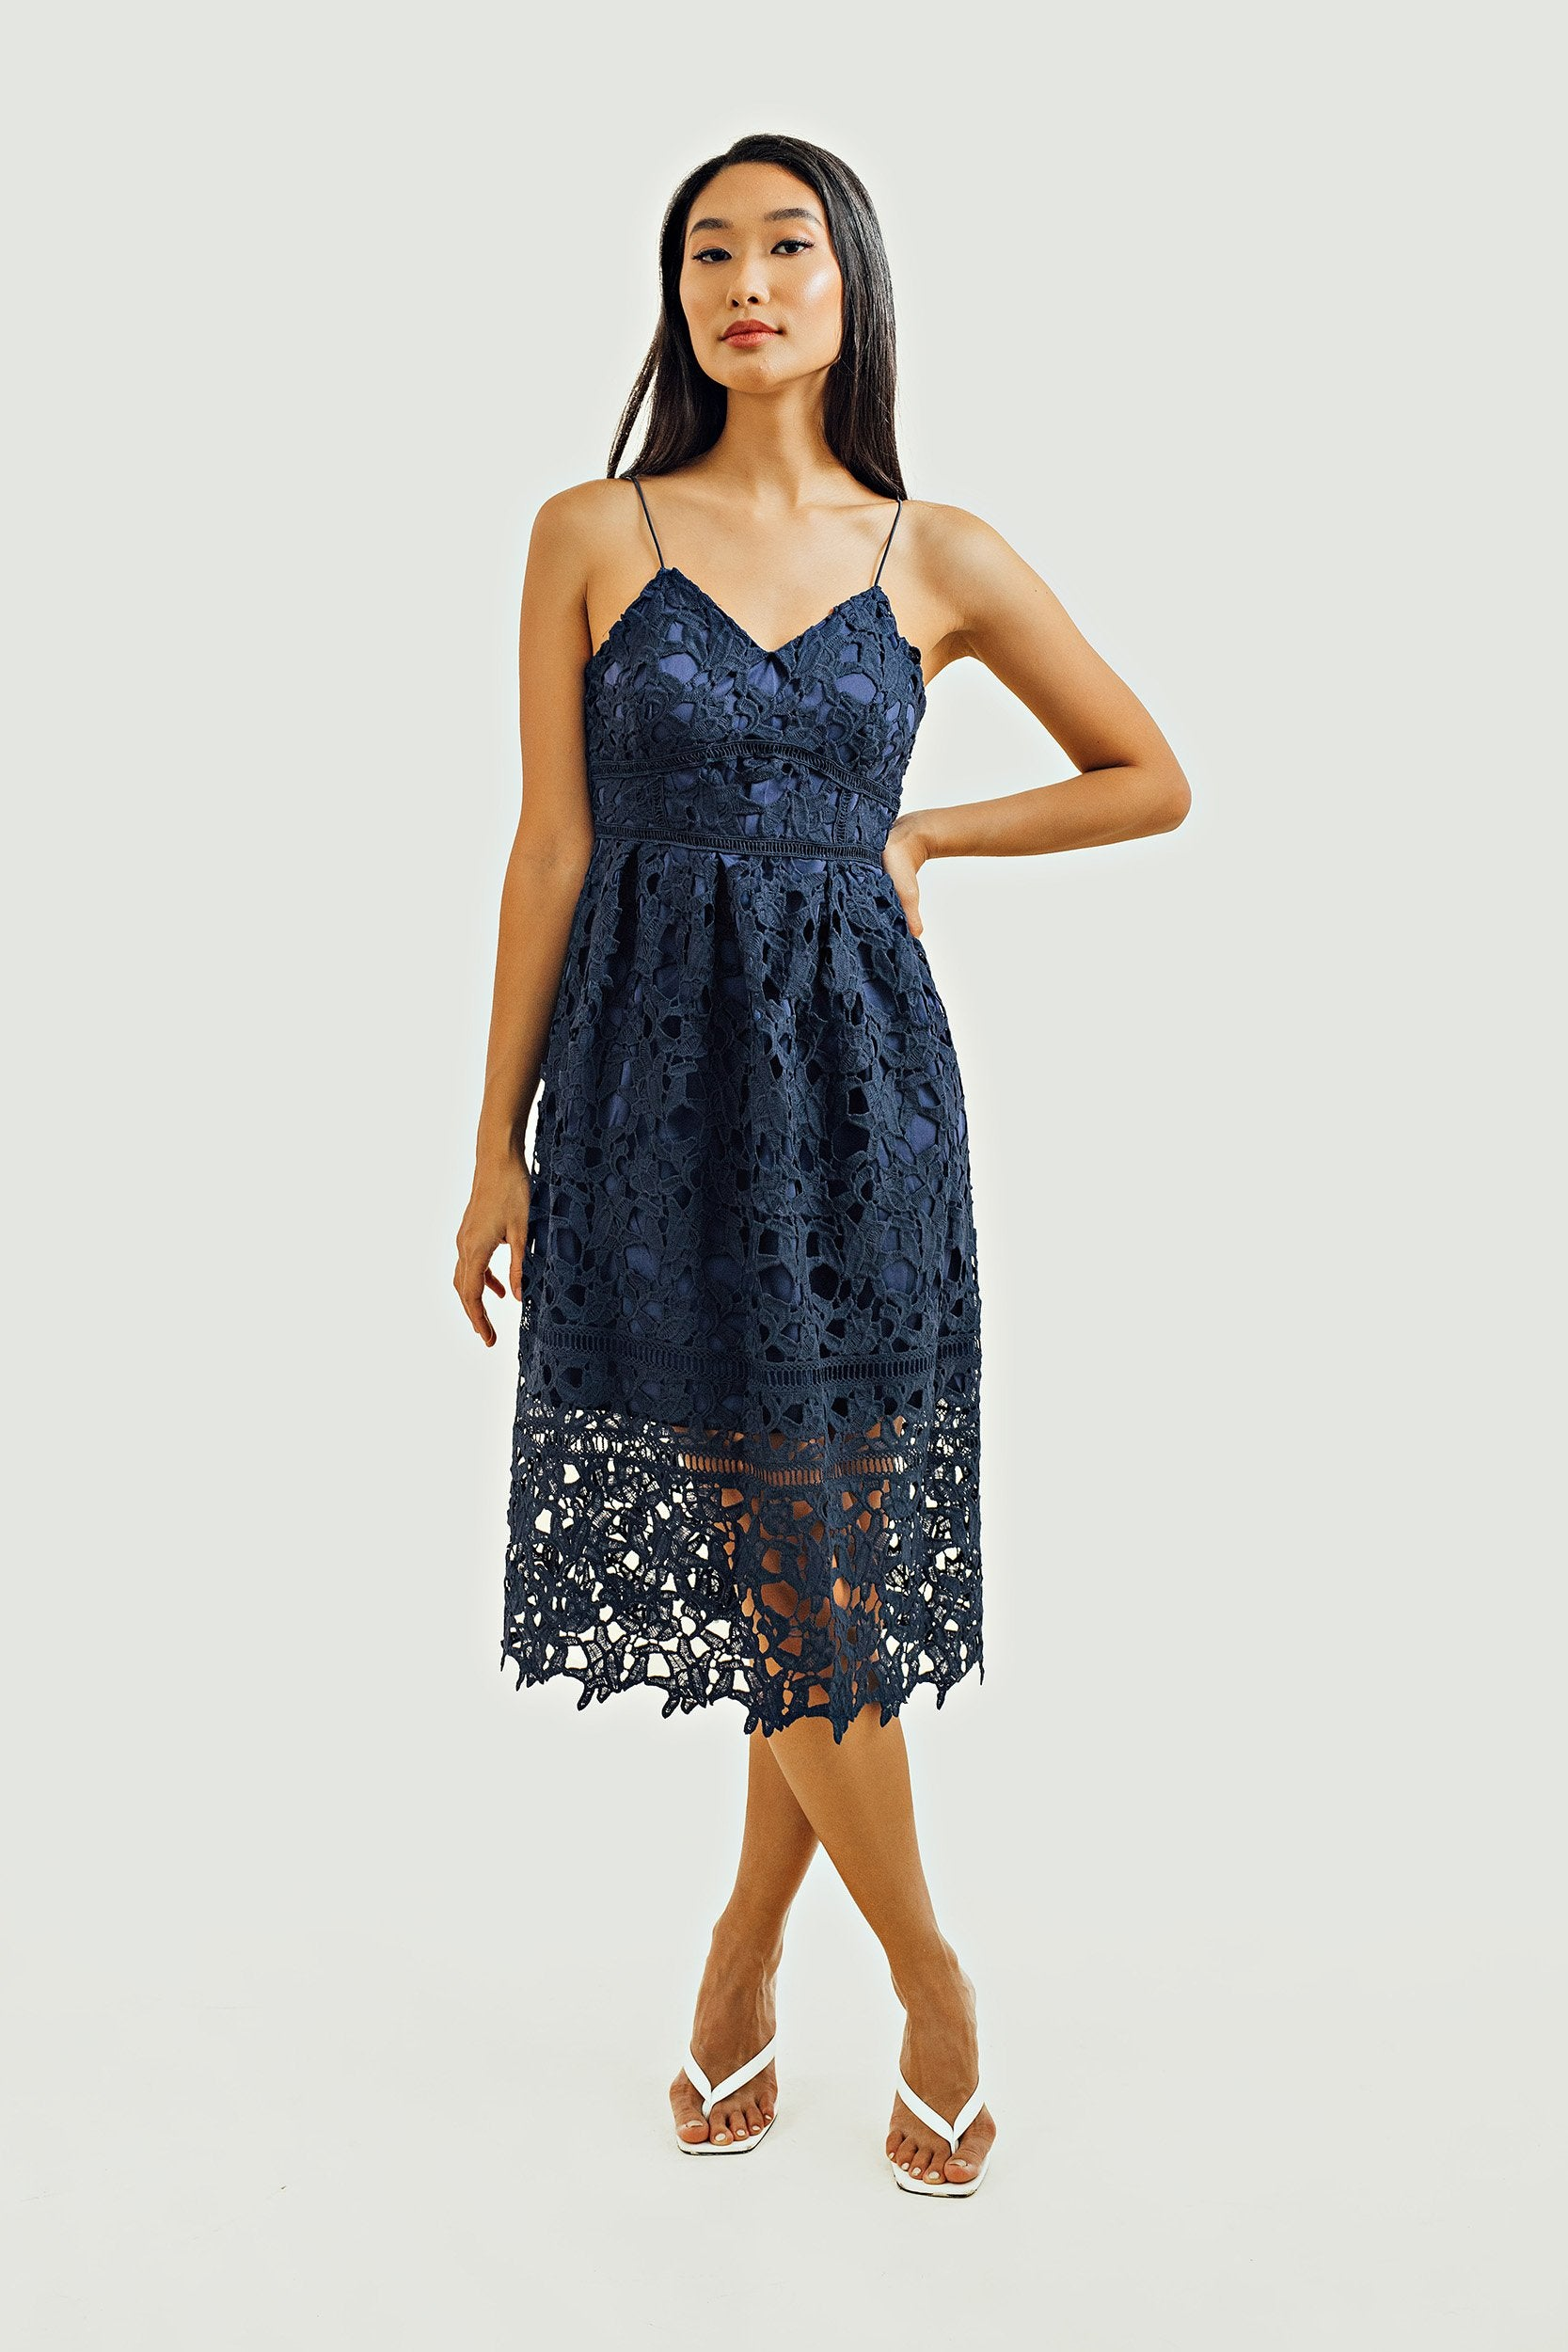 Ellie Eyelet Midi Dress